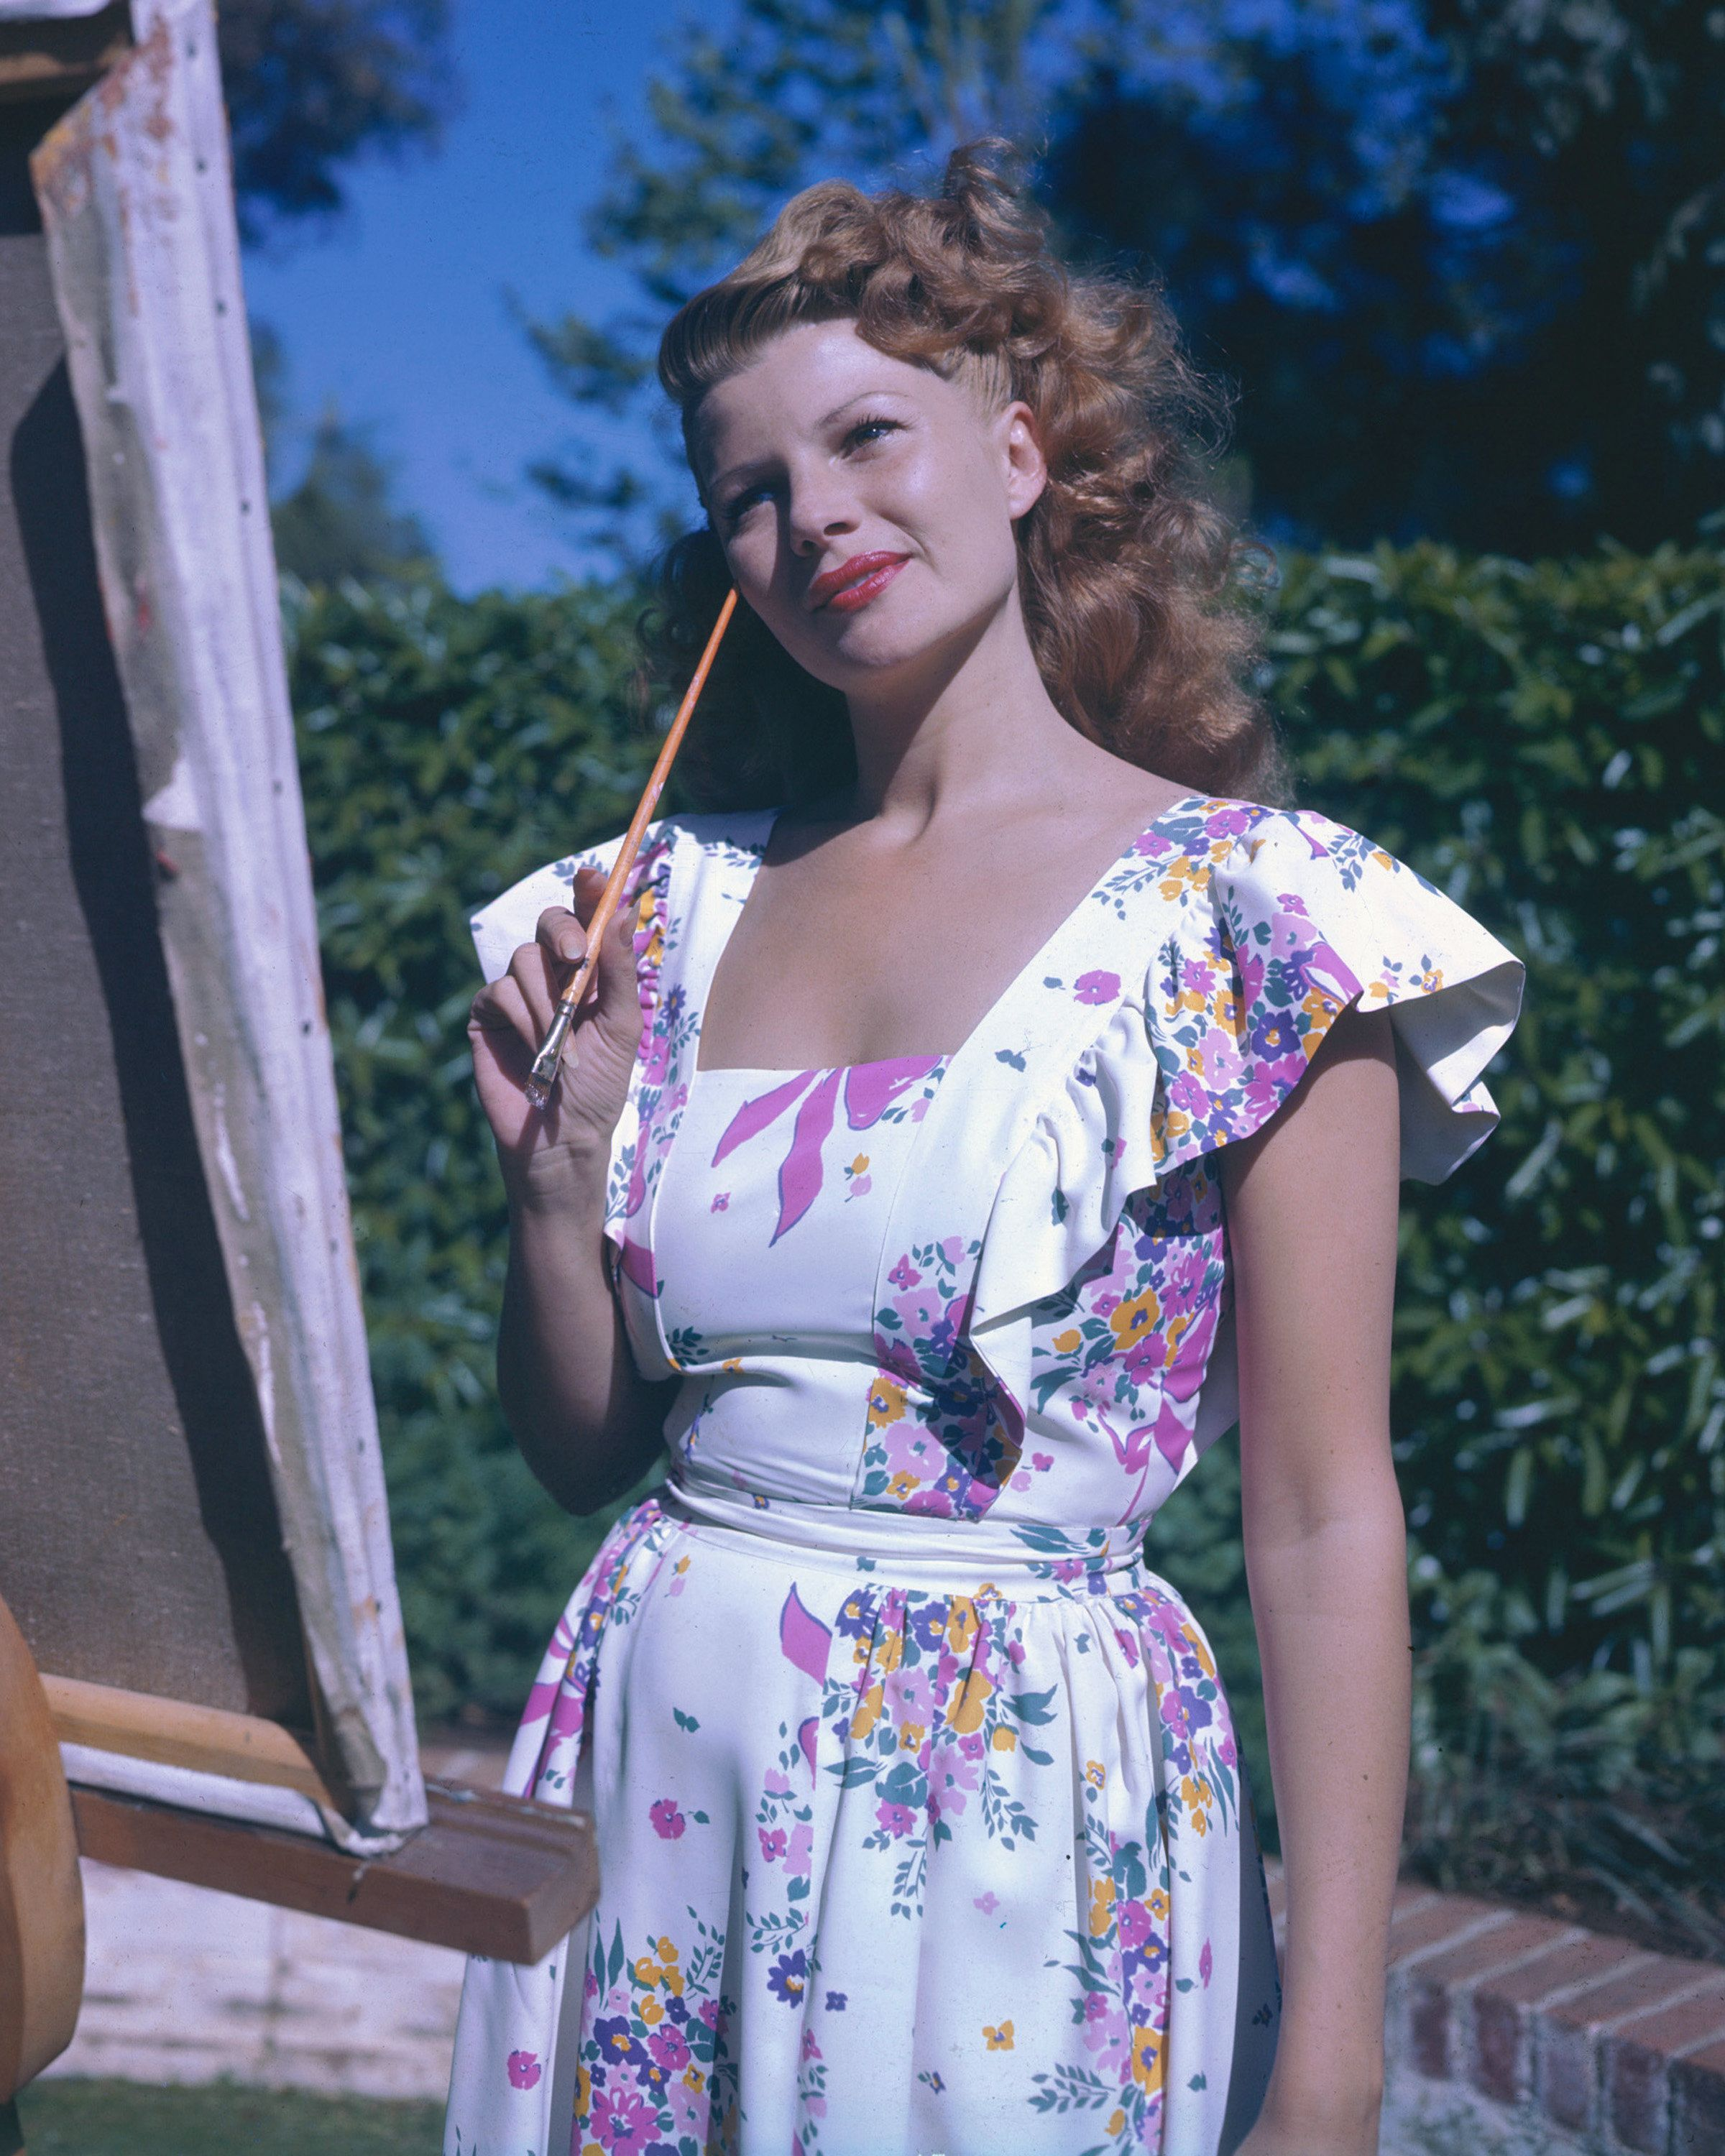 Rita Hayworth (1918-1987), US actress and dancer, wearing a sleeveless white floral print dress, posing with a paintbrush beside an easel, circa 1945. (Photo by Silver Screen Collection/Getty Images)